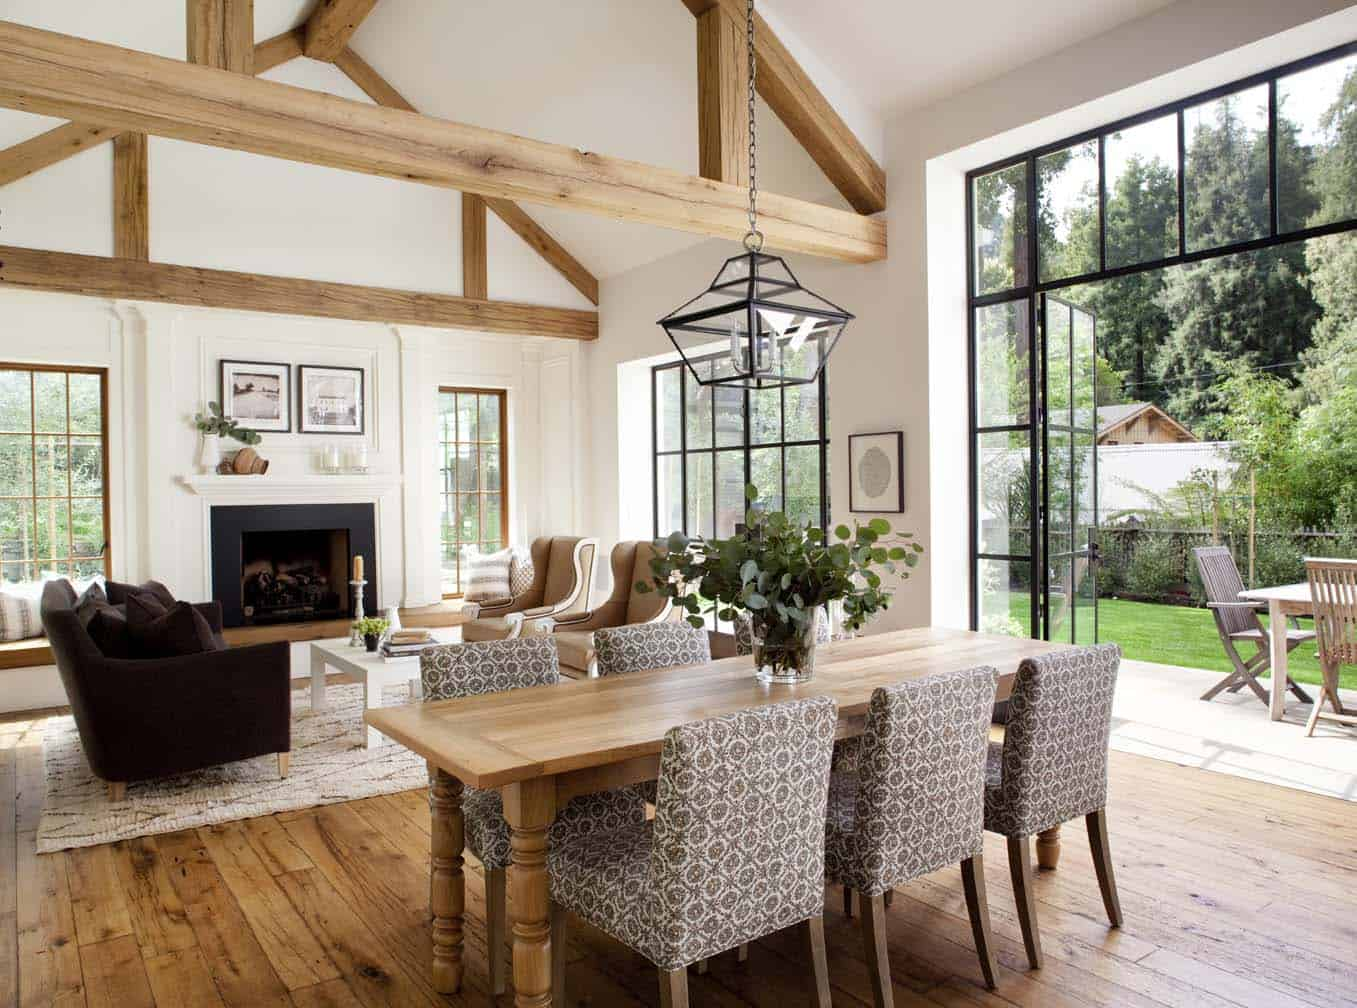 The Oakland Home Of Patrick Printy: Chic Modern Farmhouse Style In Mill Valley, California